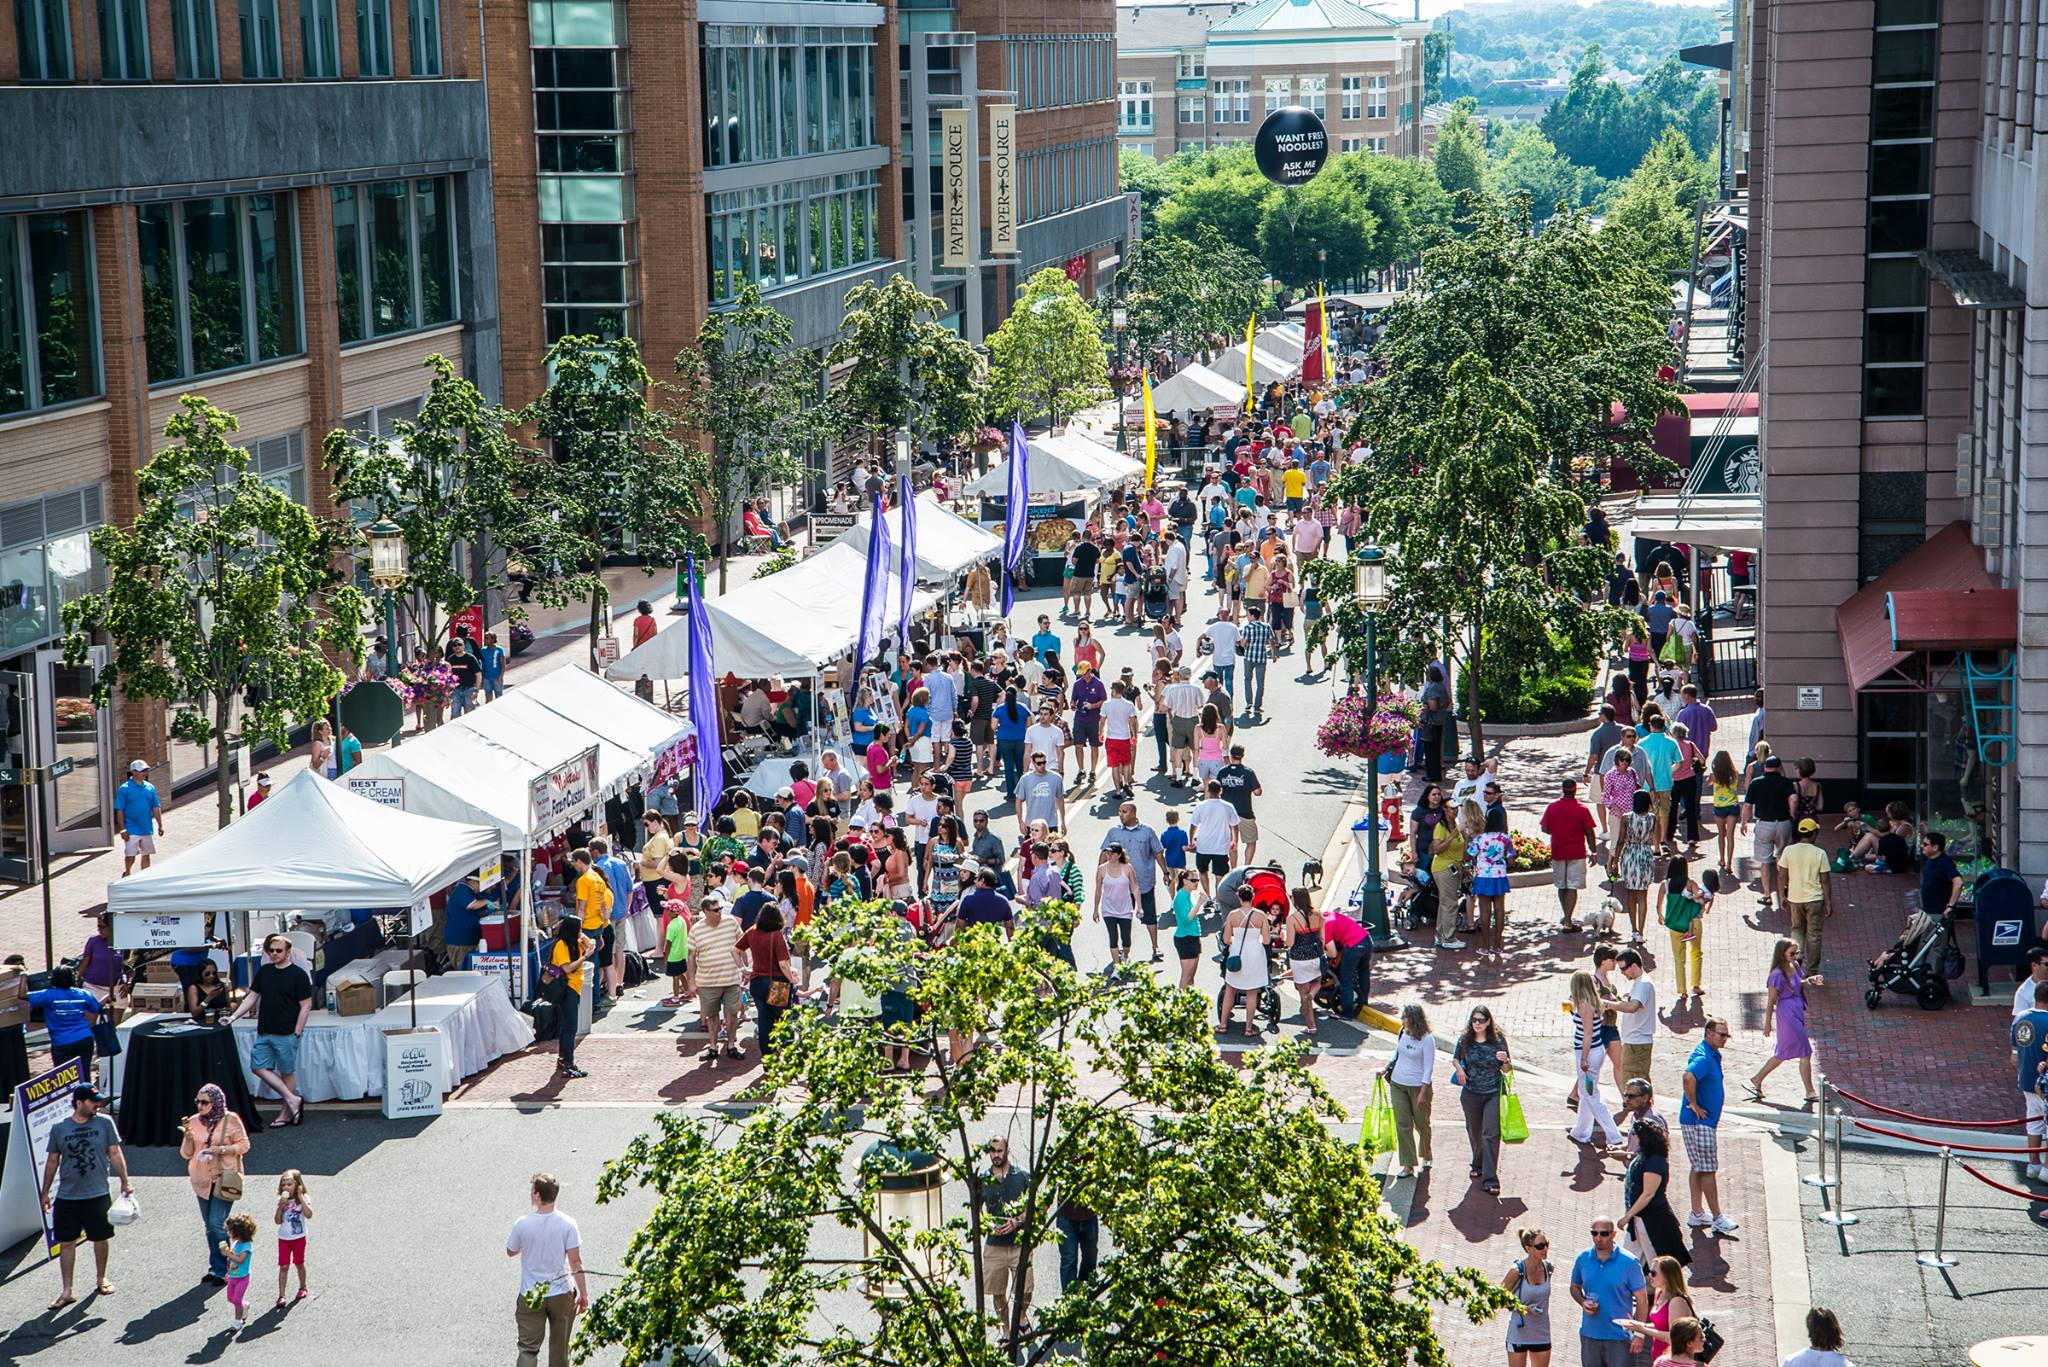 Taste of Reston, Fairfax County Virginia